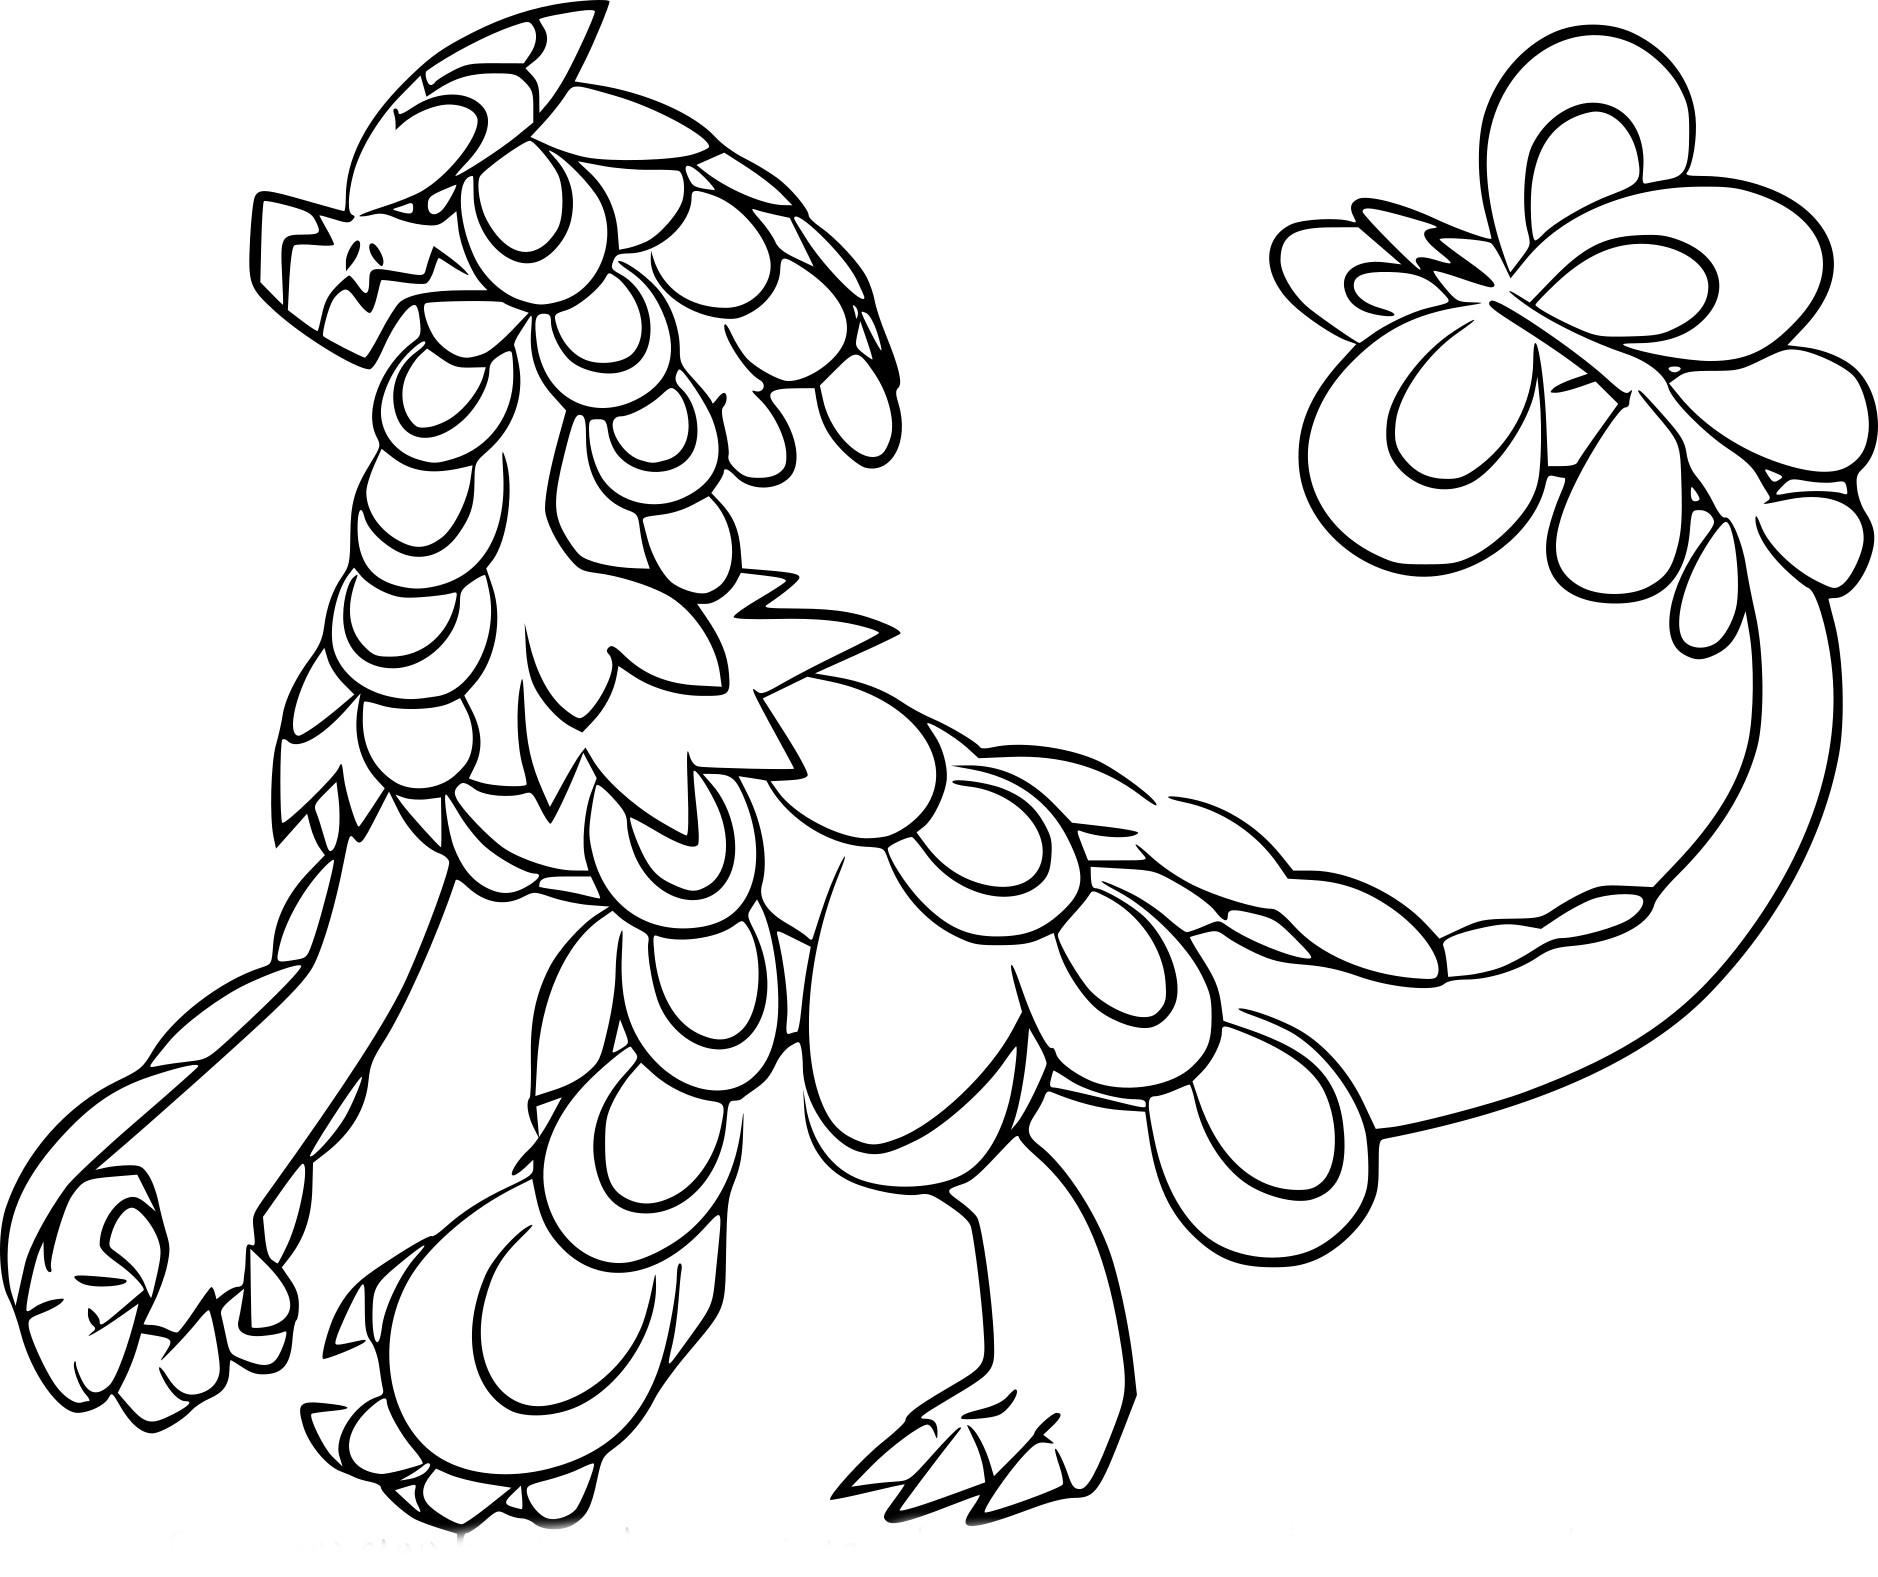 Coloriage ka ser pokemon imprimer - Dessins de pokemon ...